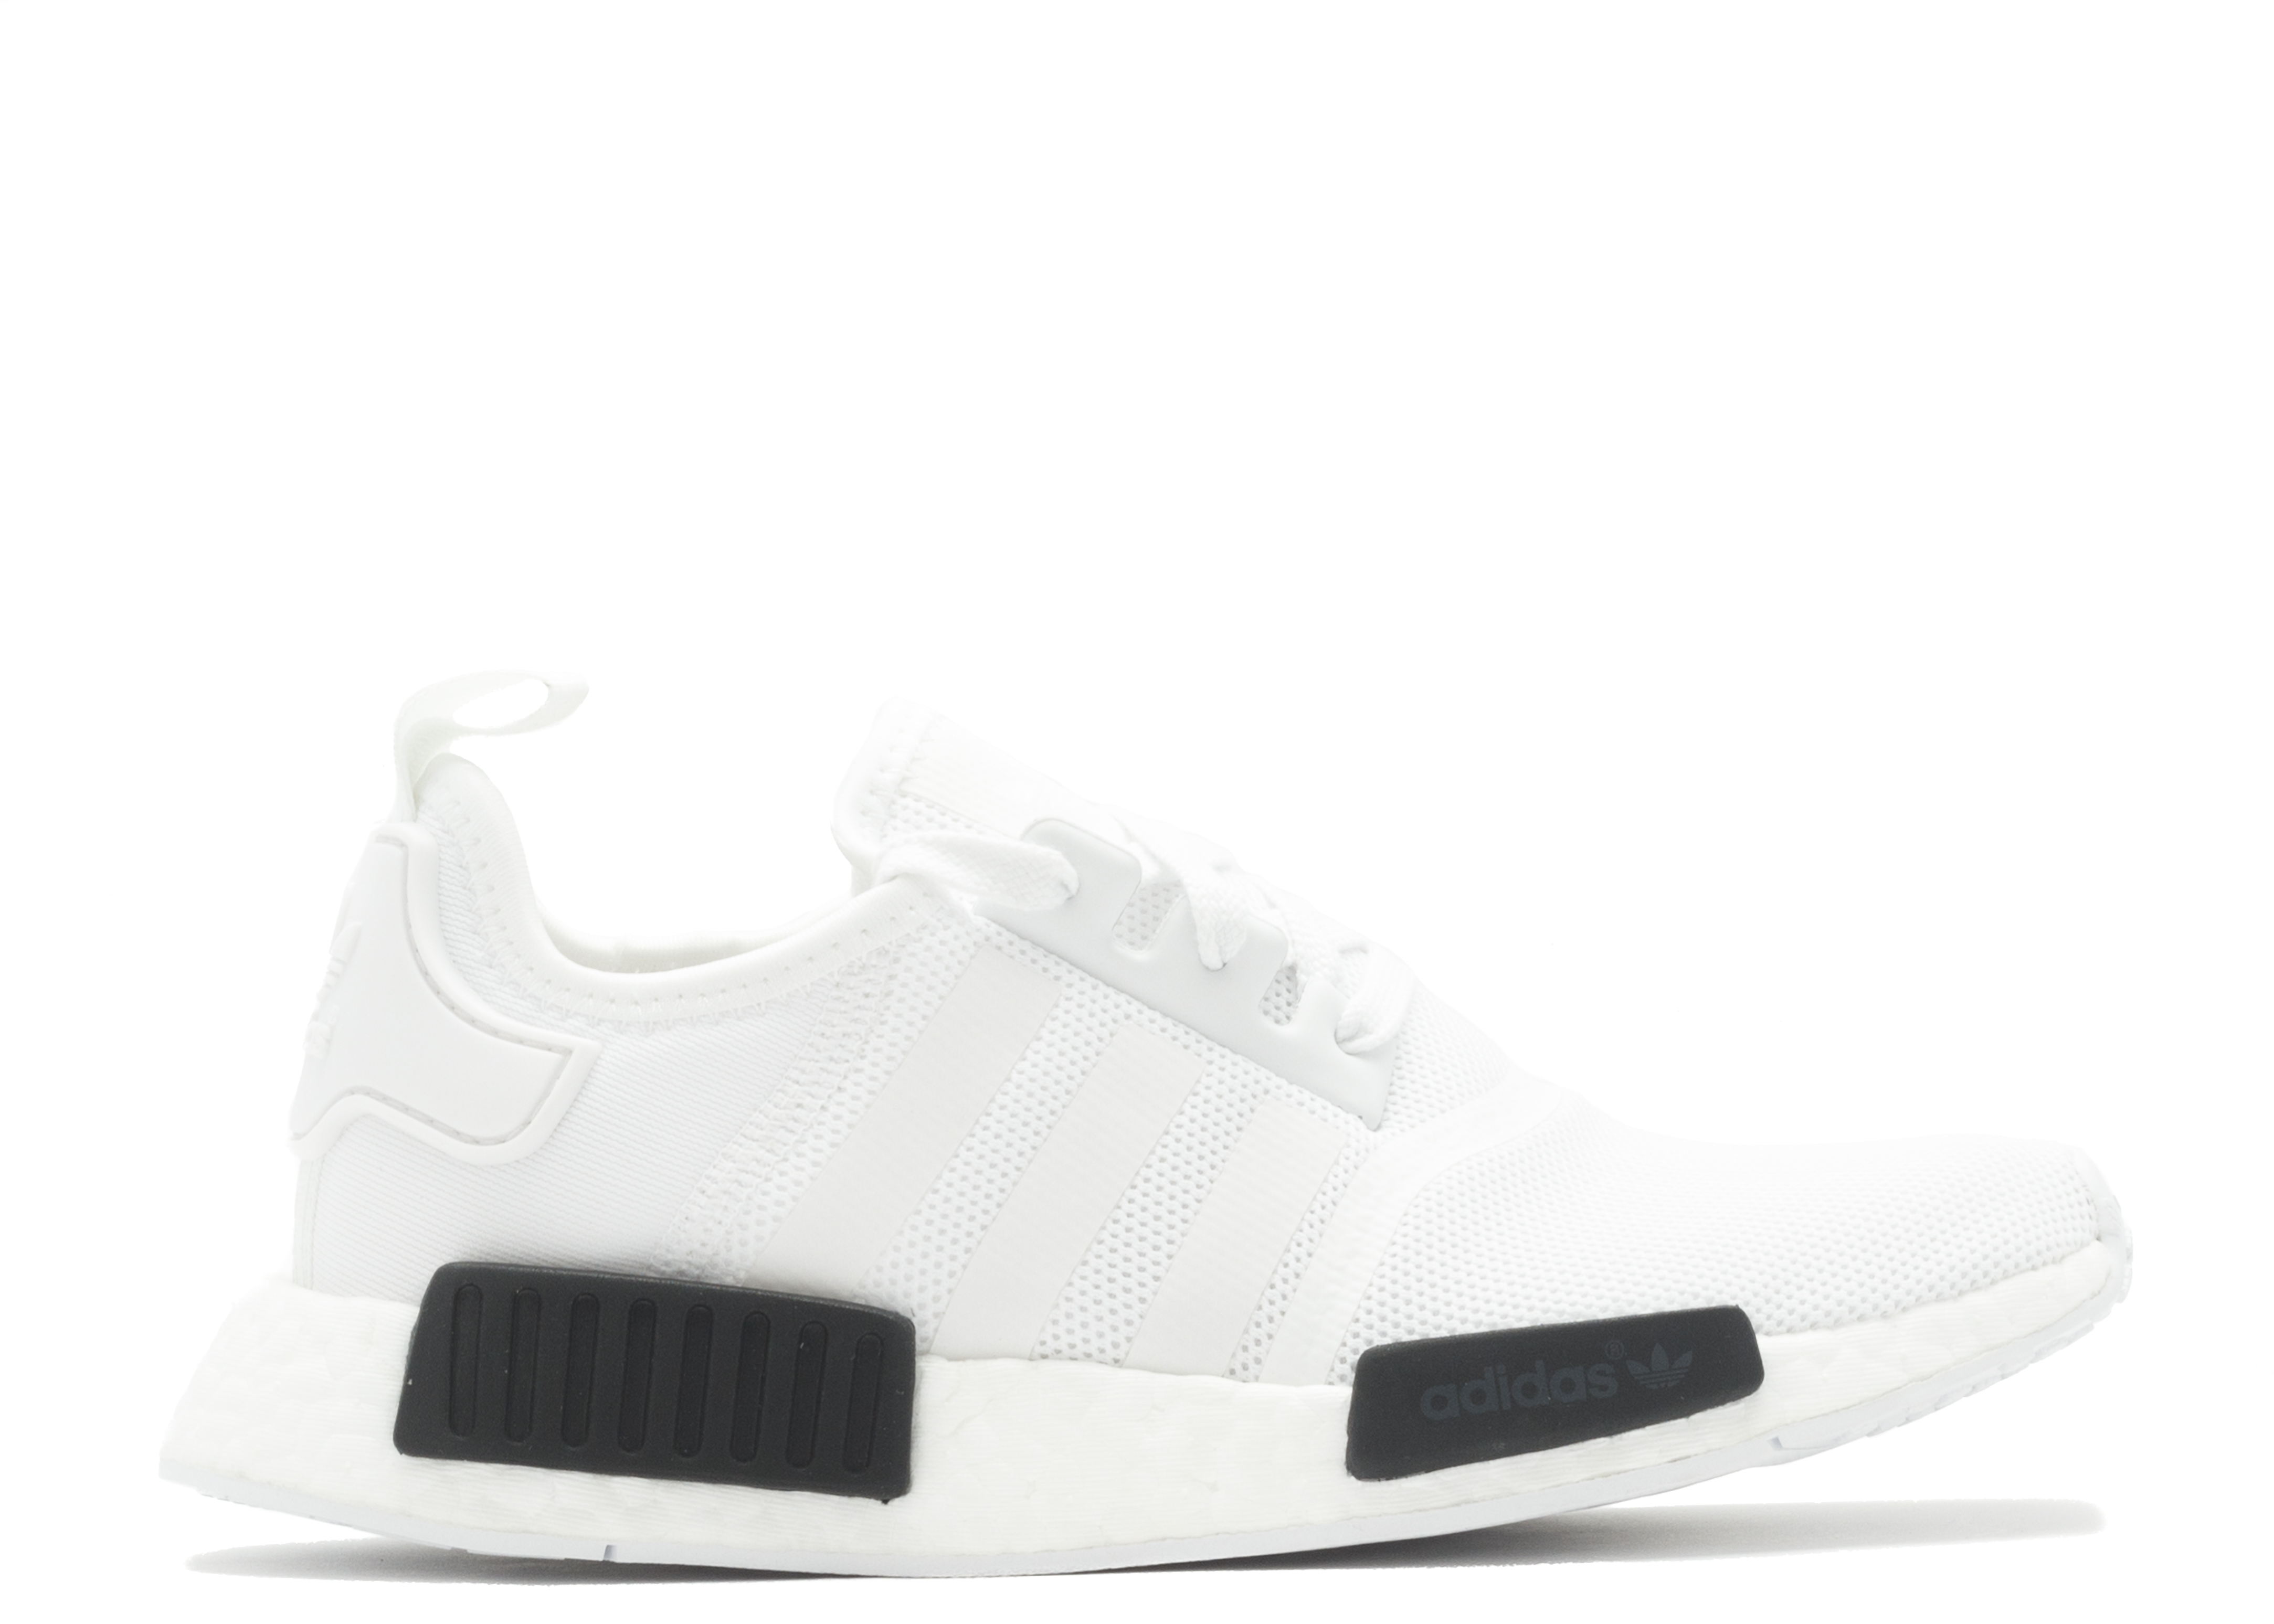 Nmd R1 - Adidas - bb1968 - white/black | Flight Club